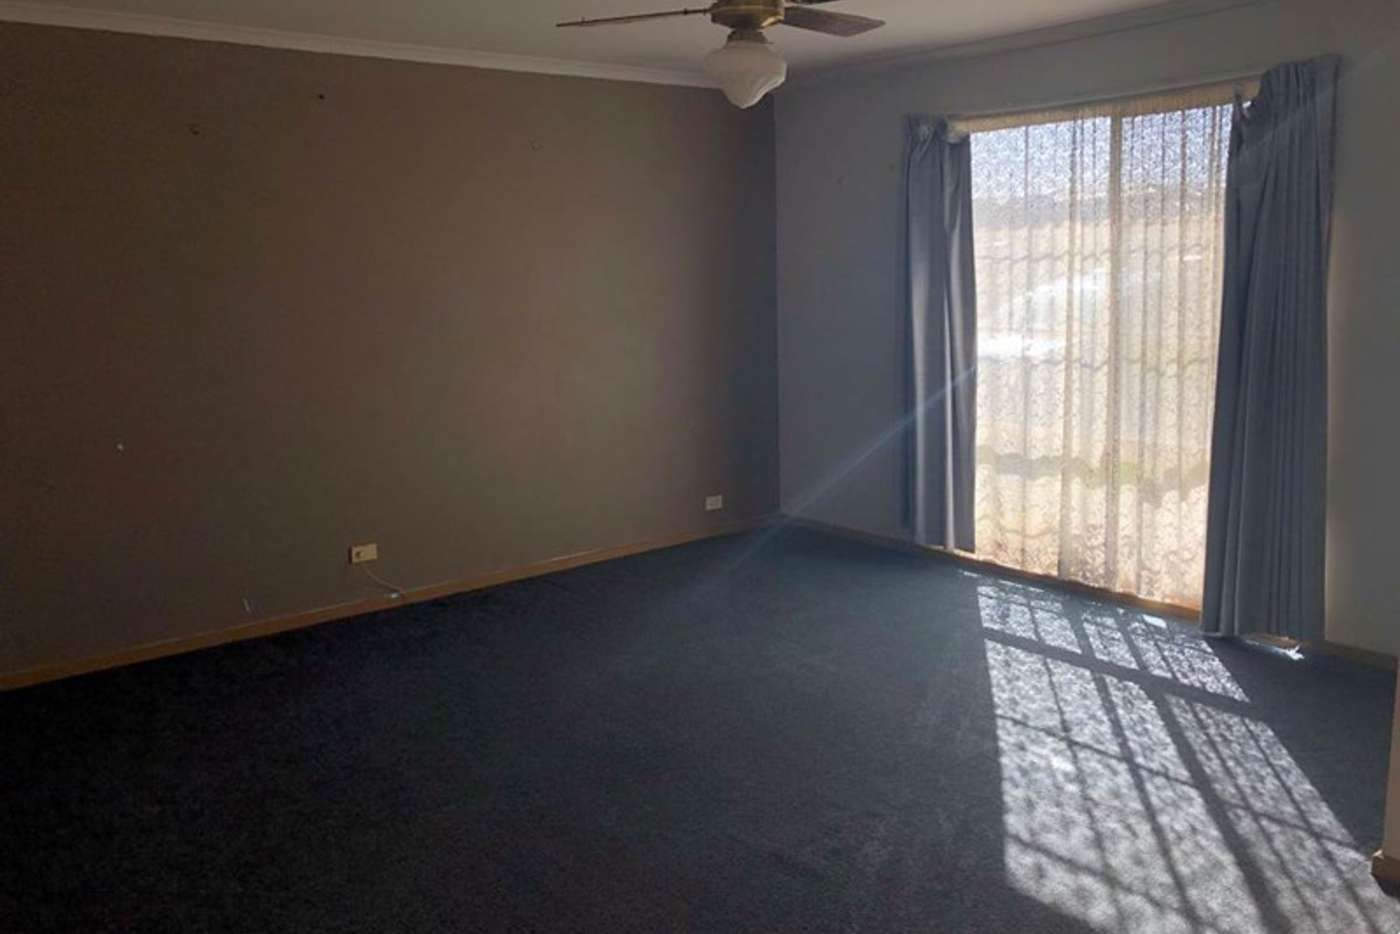 Sixth view of Homely house listing, 2 Parkside Walk, Laverton VIC 3028